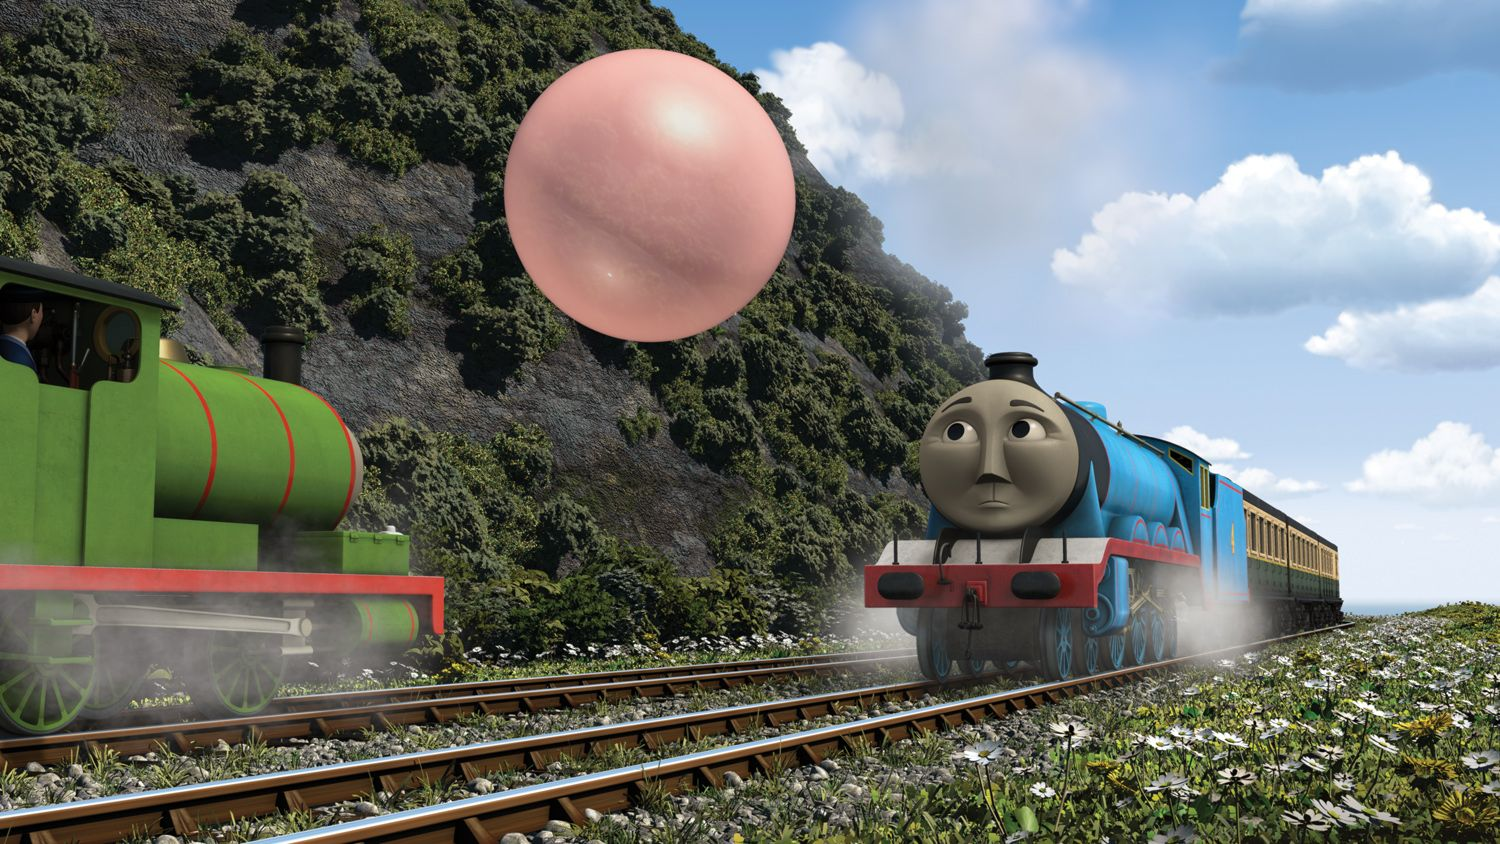 Roll Along Thomas The Thomas and Friends News Blog  The Archive